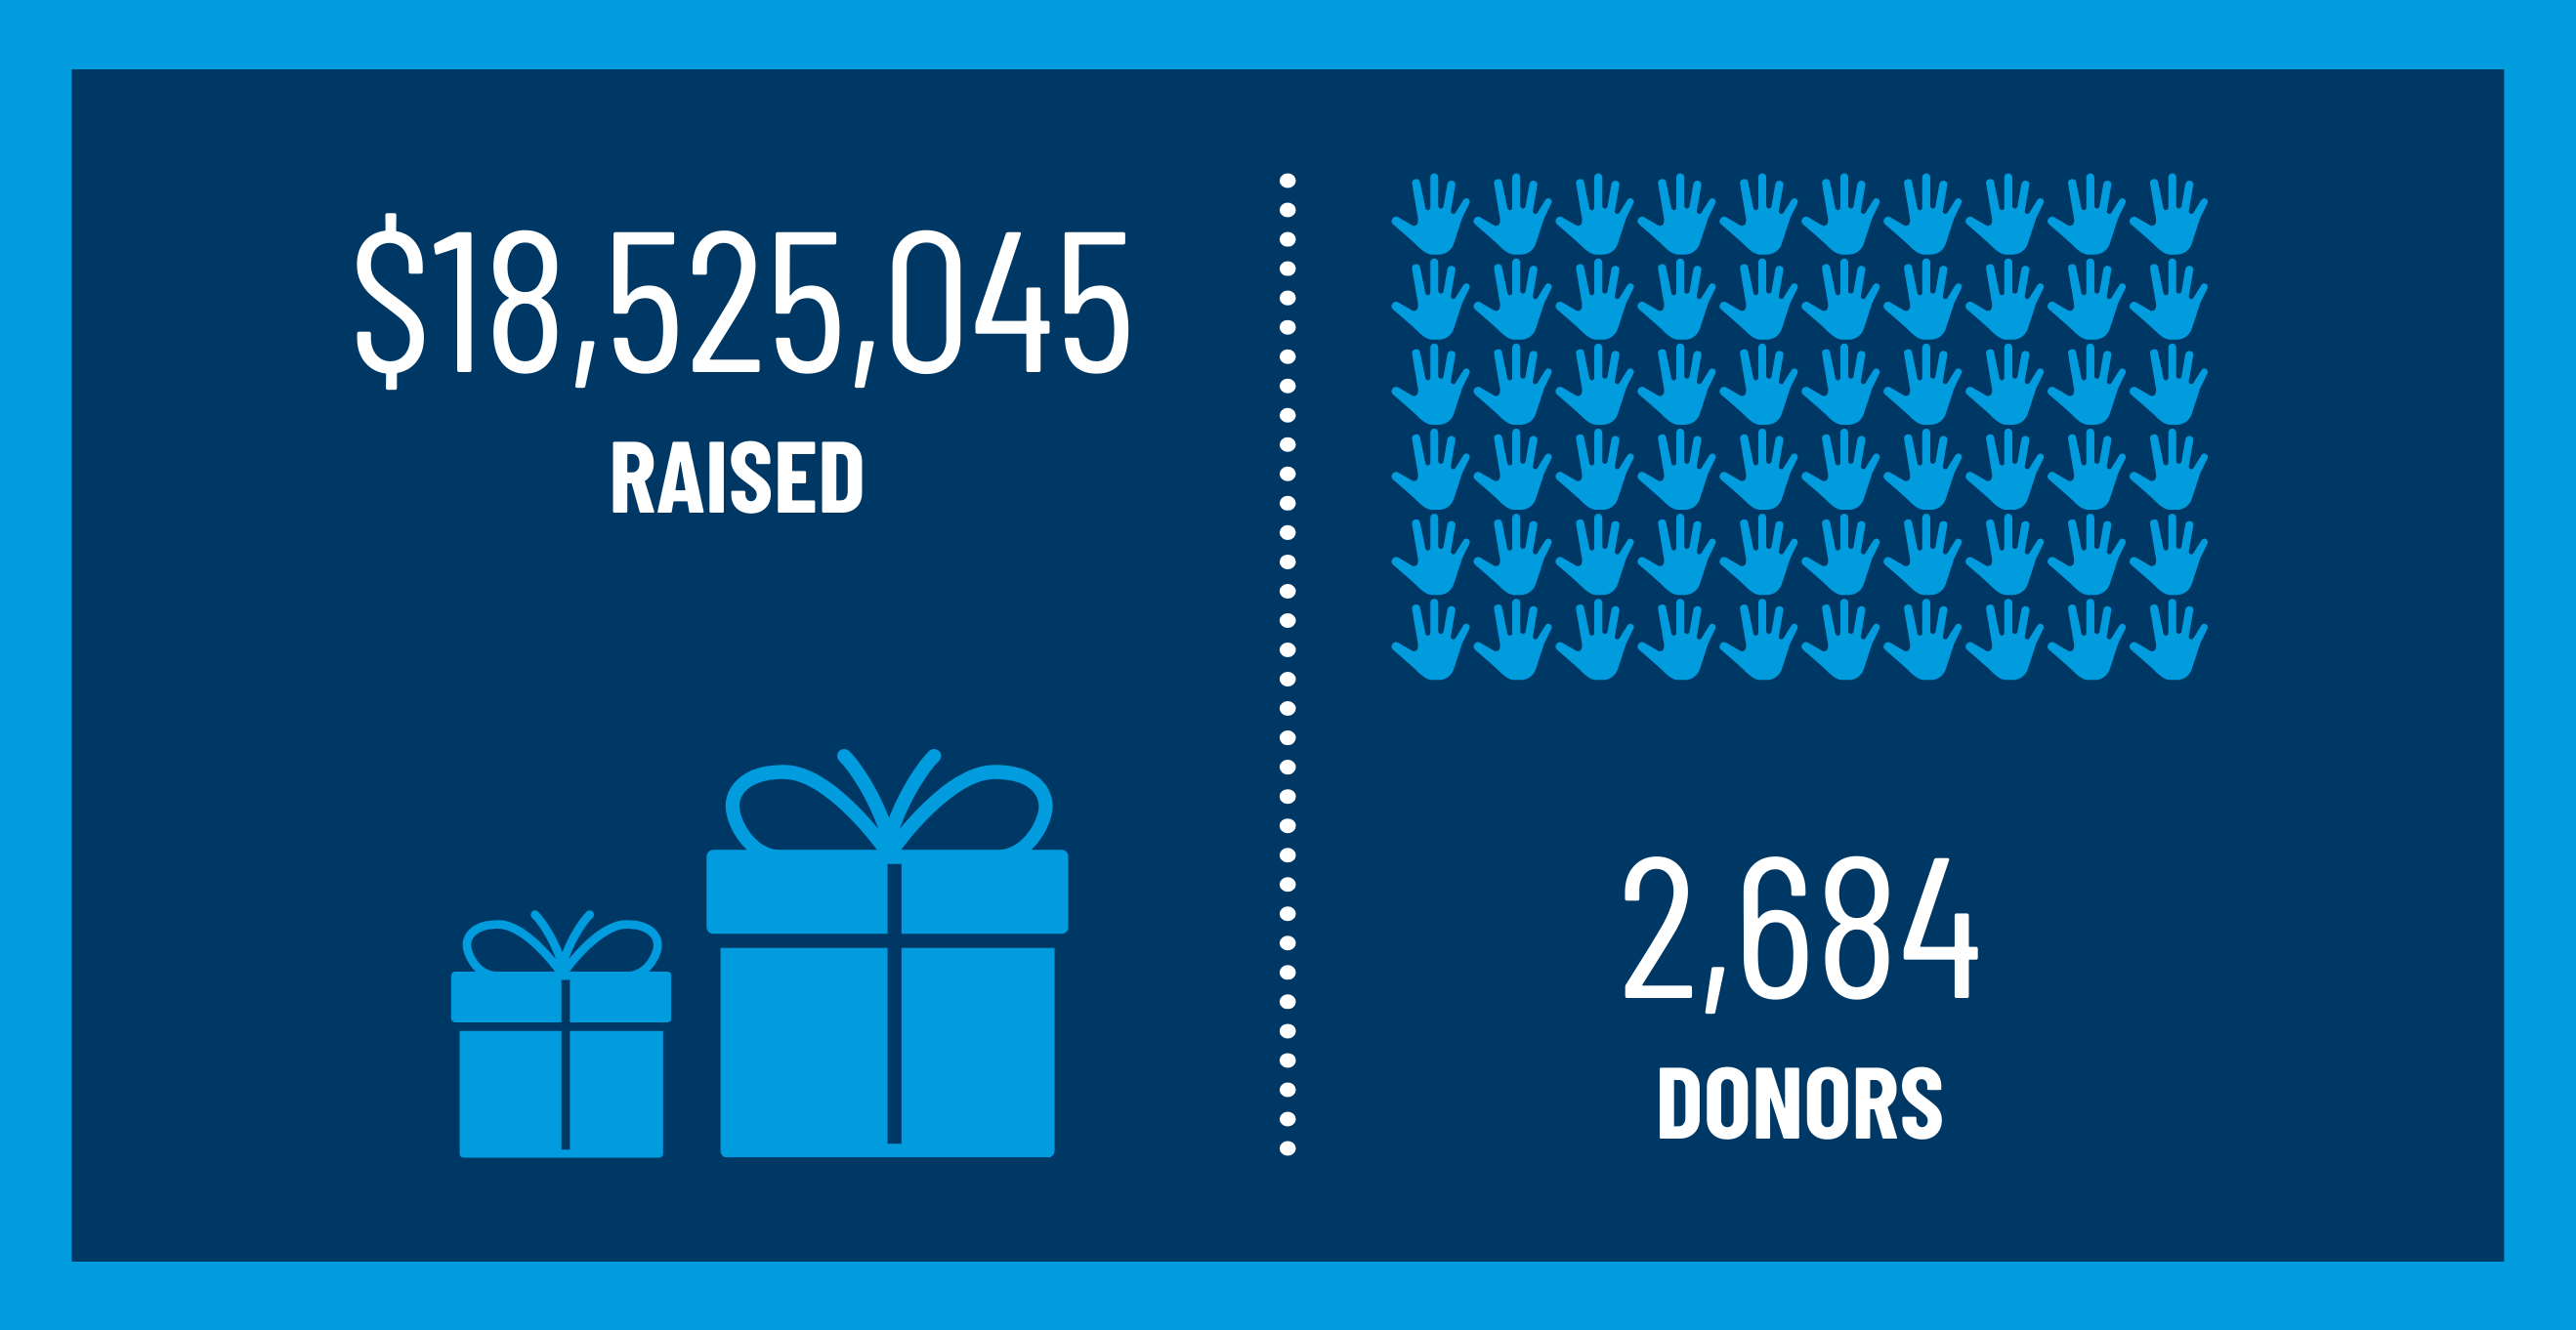 $18,525,045 raised; 2,684 donors